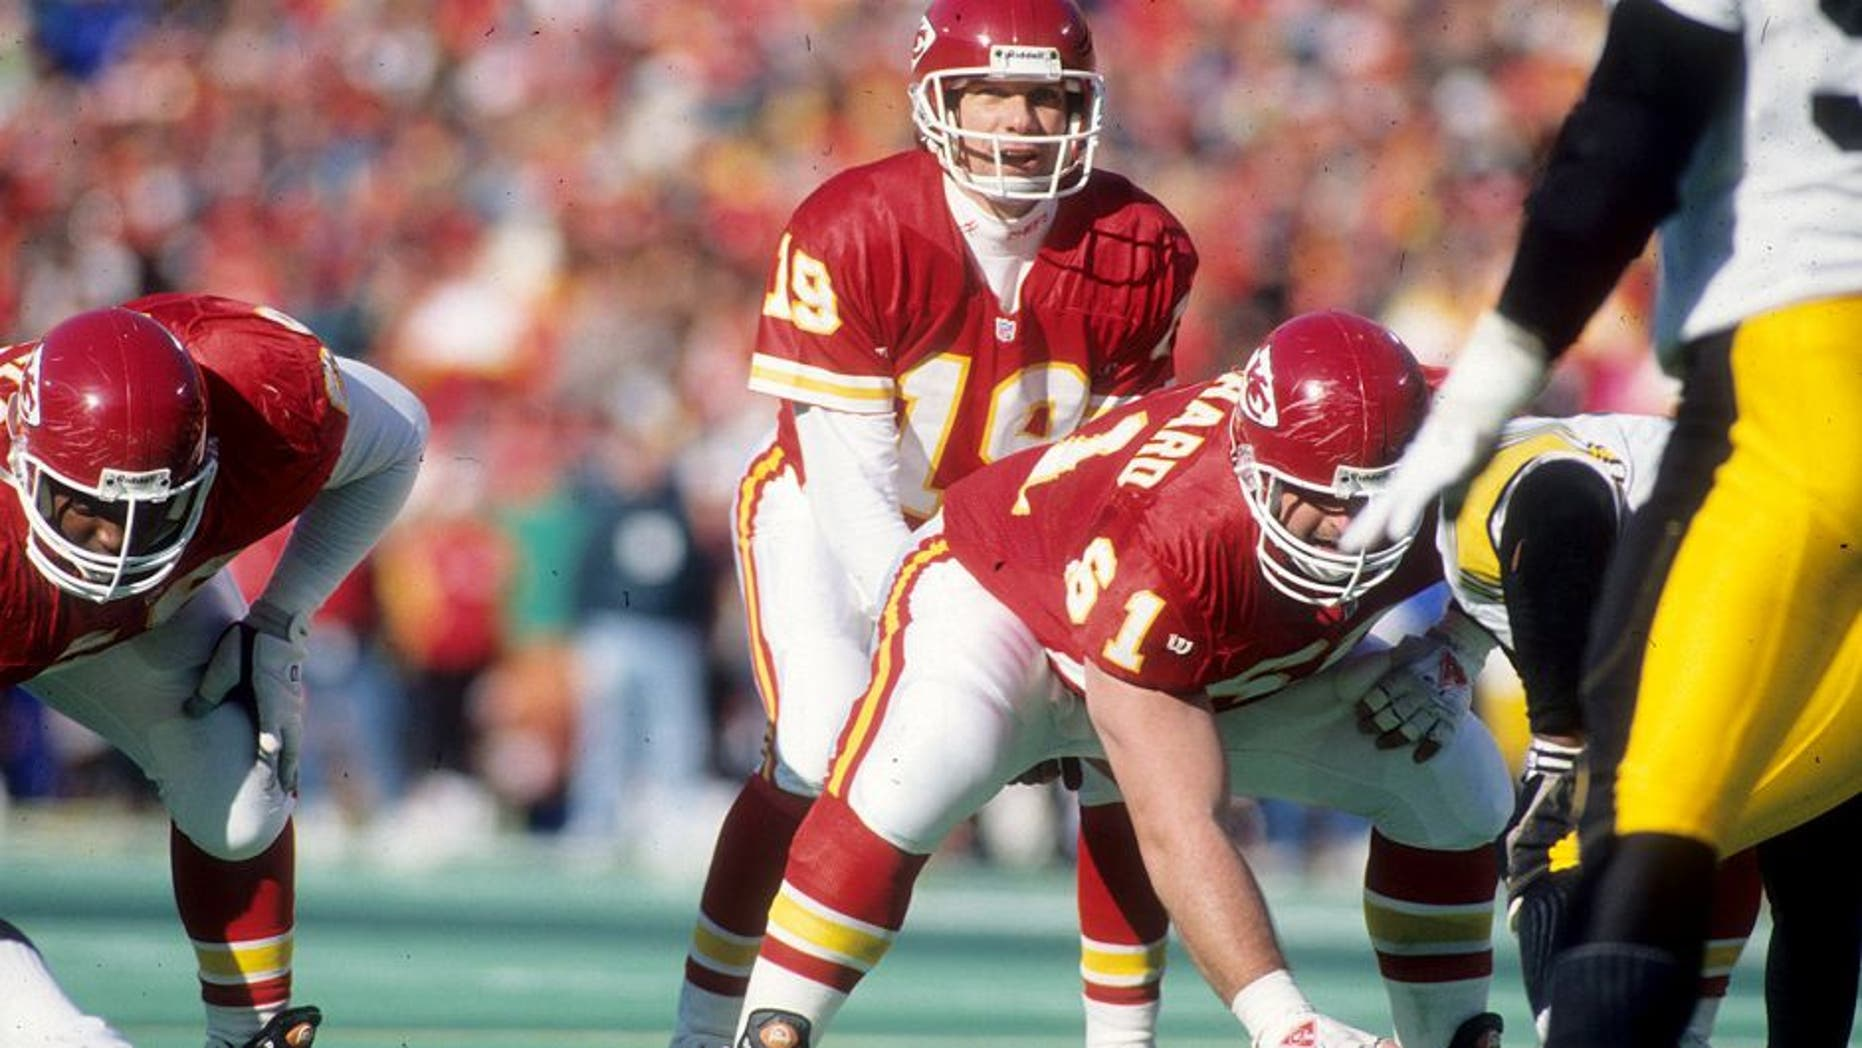 KANSAS CITY, MO - JANUARY 8: Quarterback Joe Montana #19 of the Kansas City Chiefs prepares to take the snap from center Tim Grunhard #61 against the Pittsburgh Steelers in the 1993 AFC Wild Card Game at Arrowhead Stadium on January 8, 1994 in Kansas City, Missouri. The Chiefs defeated the Steelers 27-24 in overtime. (Photo by Joseph Patronite/Getty Images)